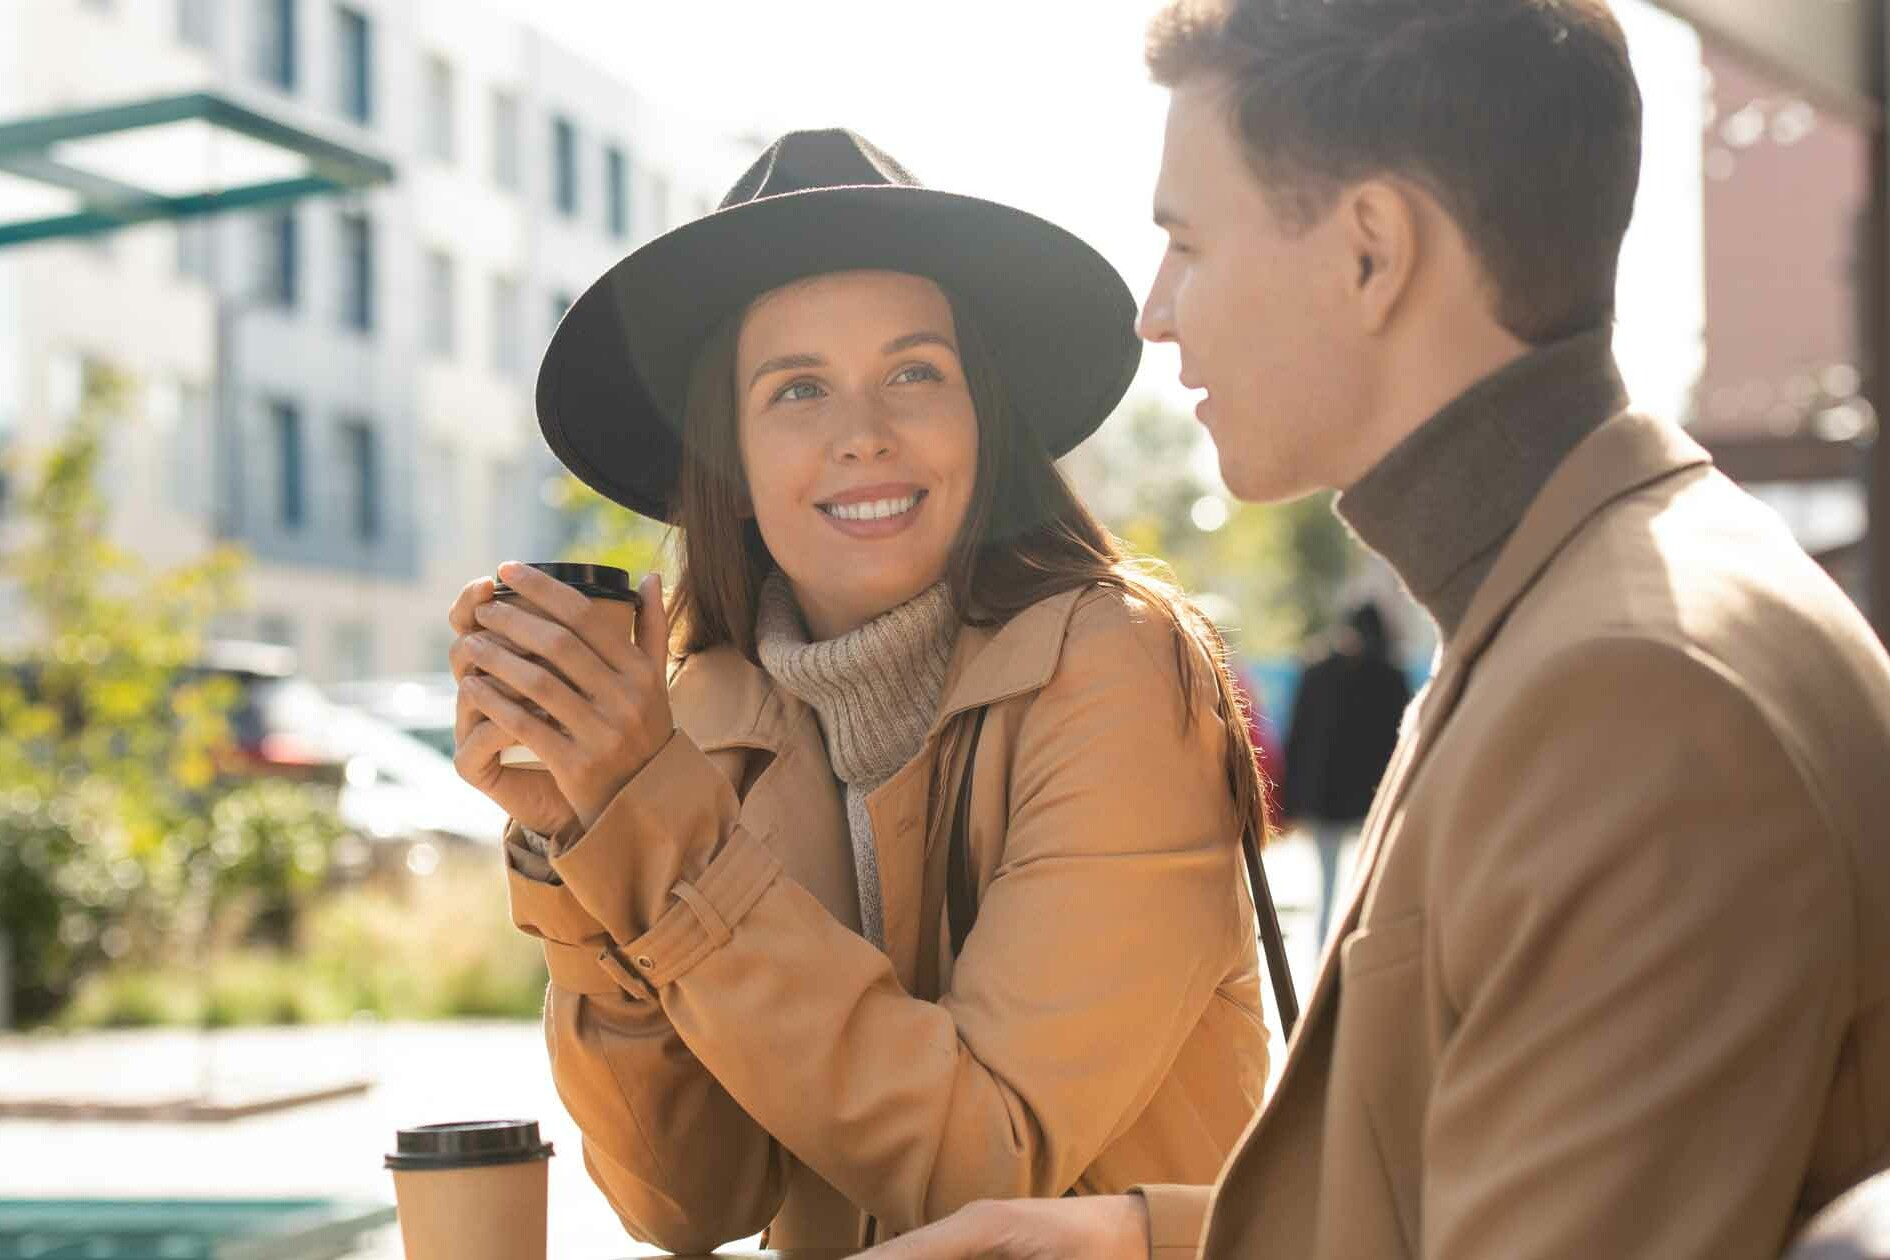 Couple on Coffee Date Not Oversharing